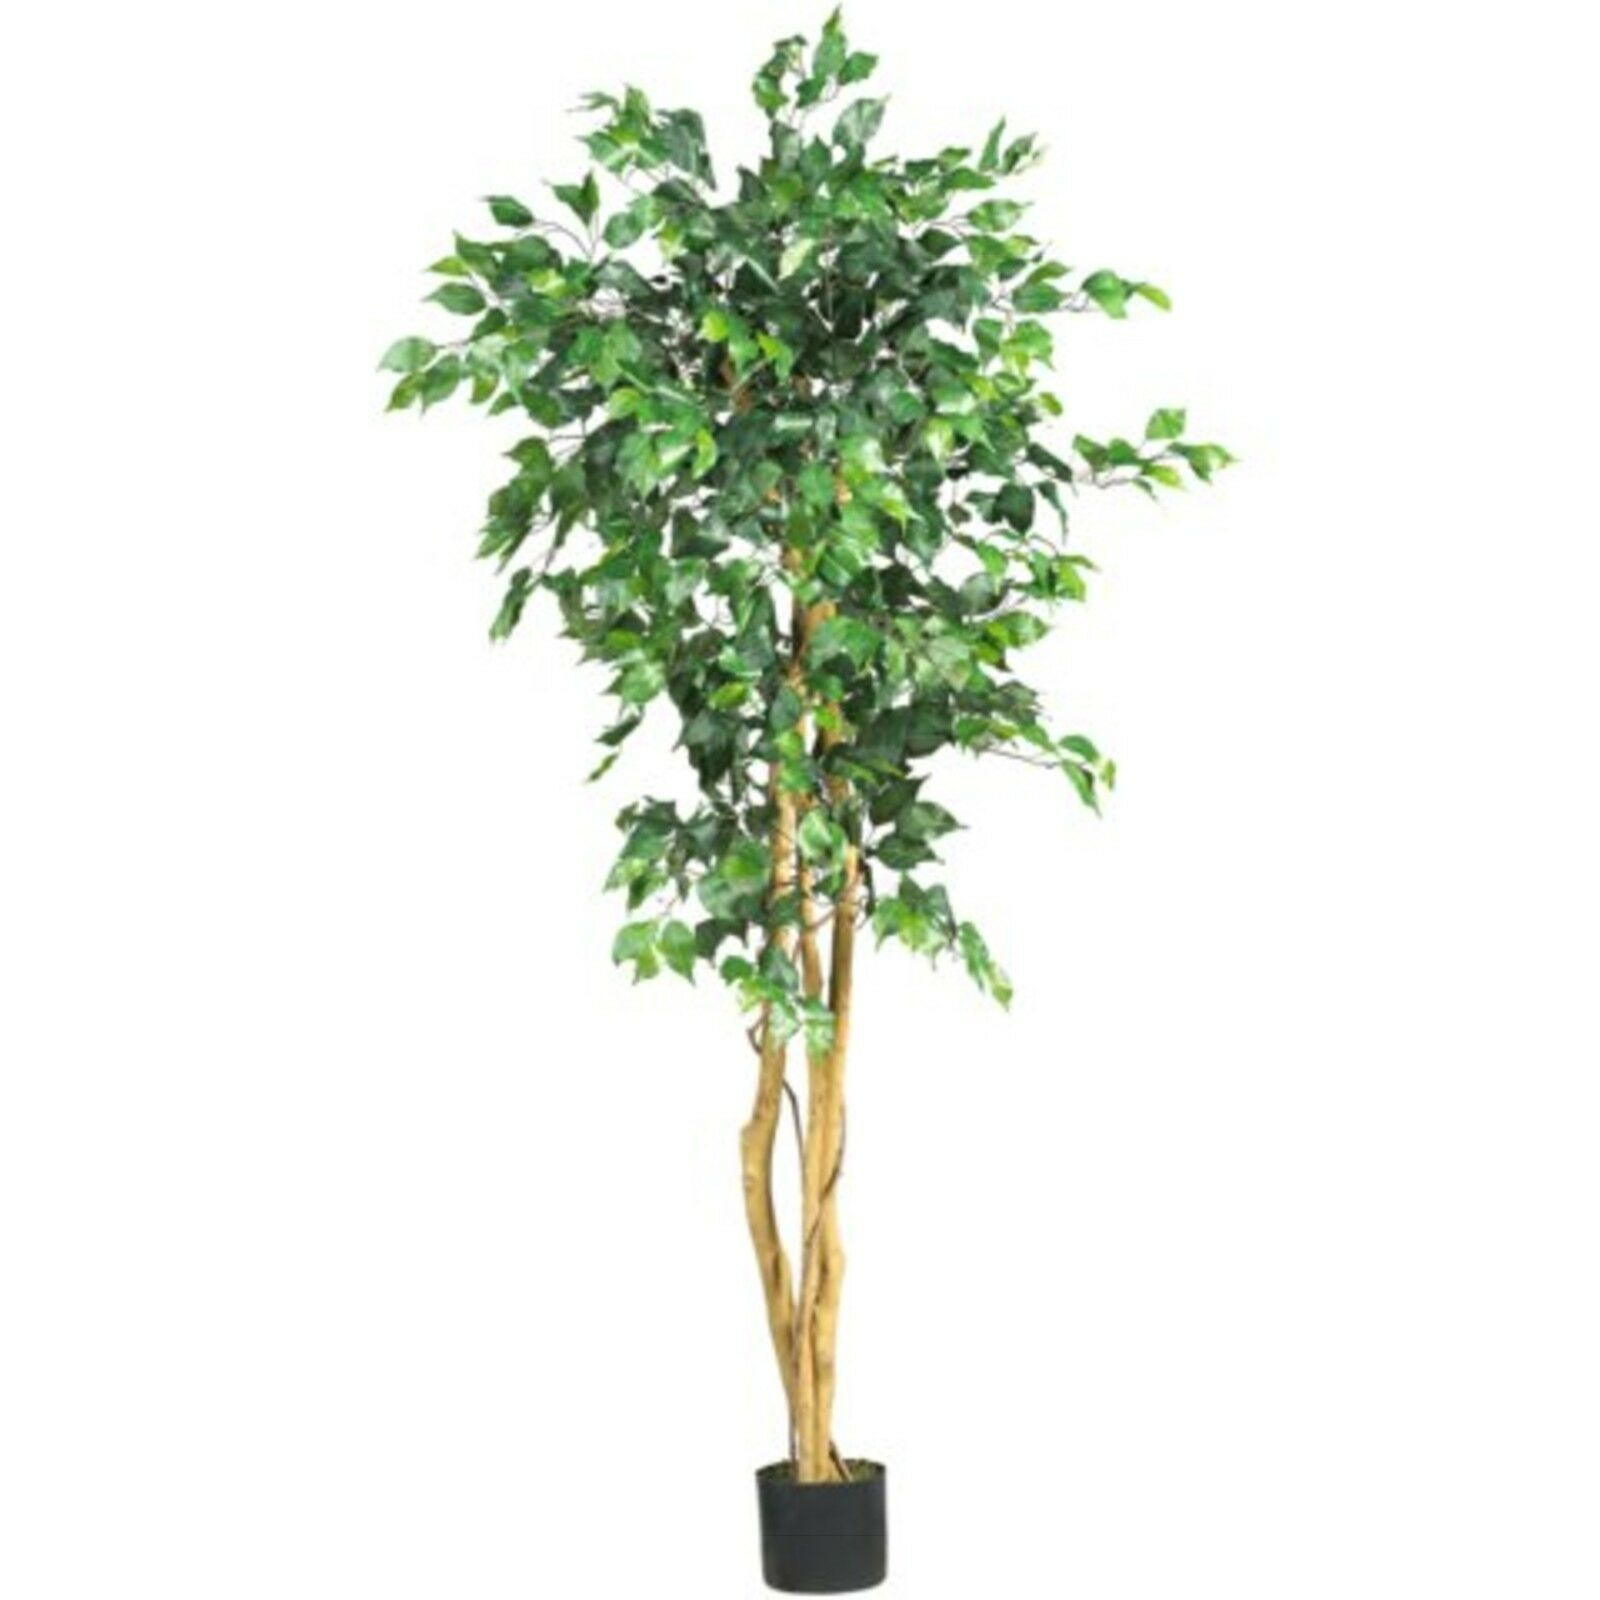 Decorative Natural Looking Artificial Home Office 5' Ficus Silk Tree Plants